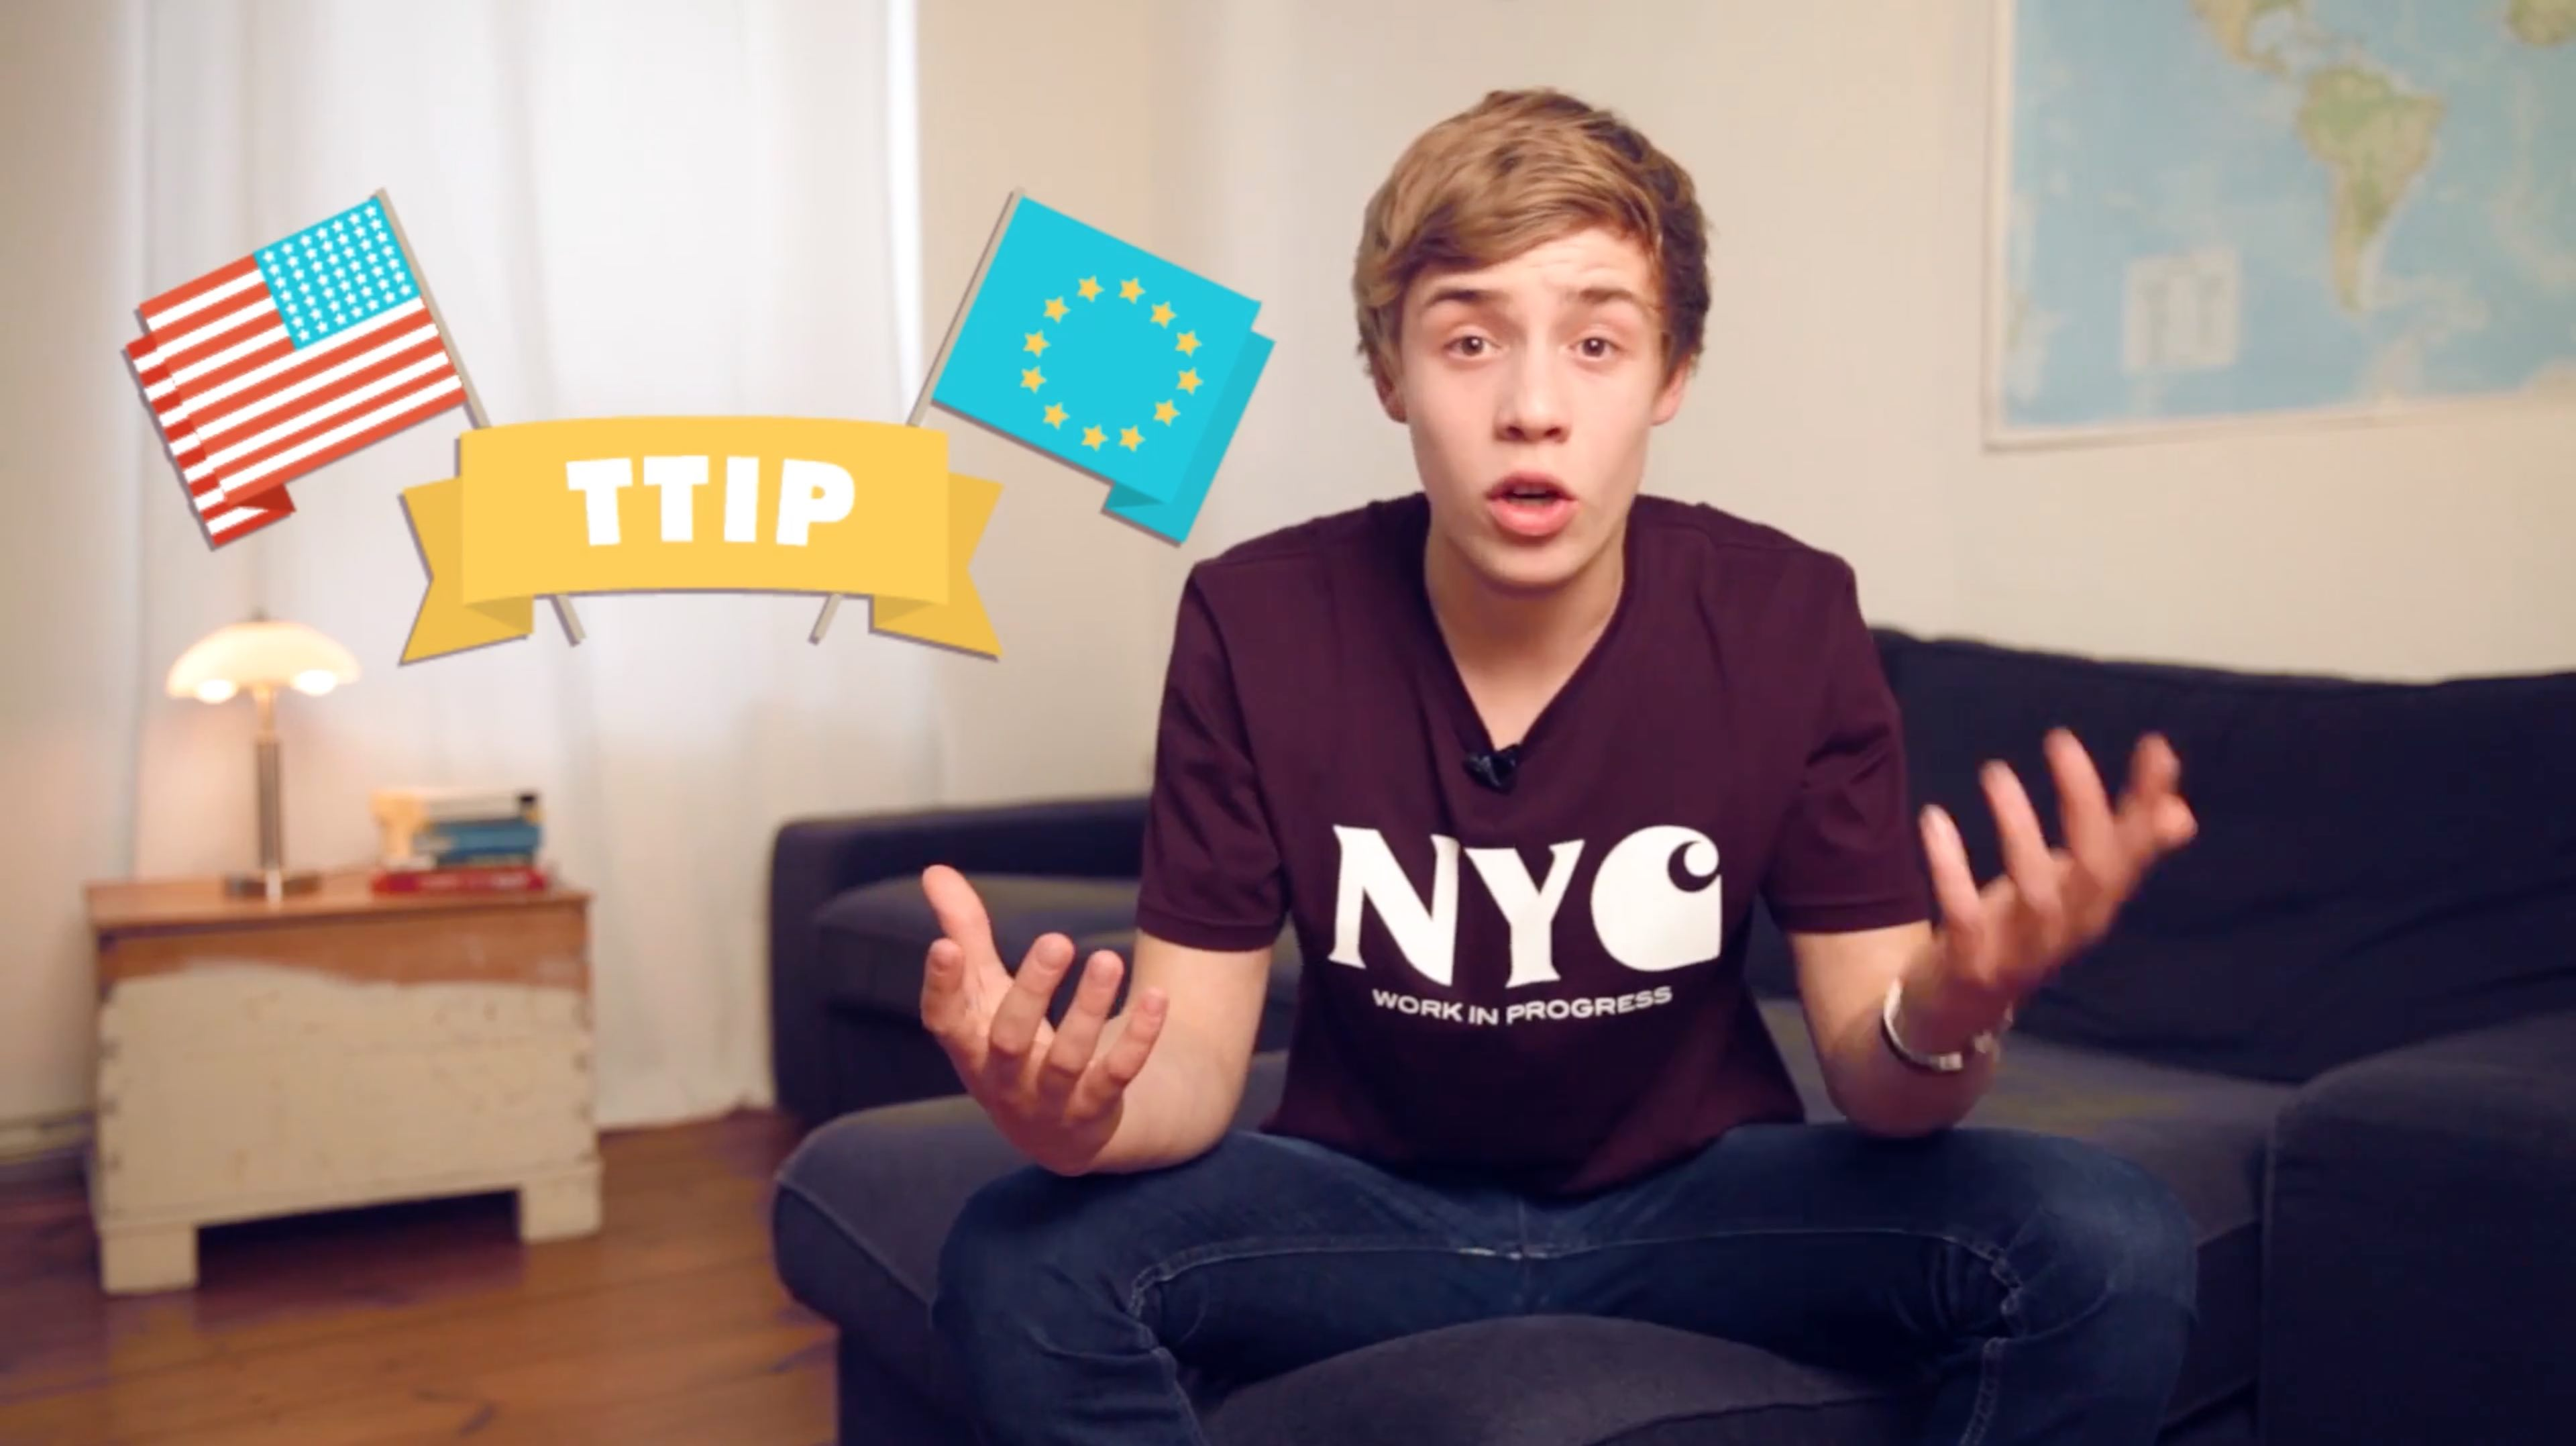 poliWHAT?! TTIP